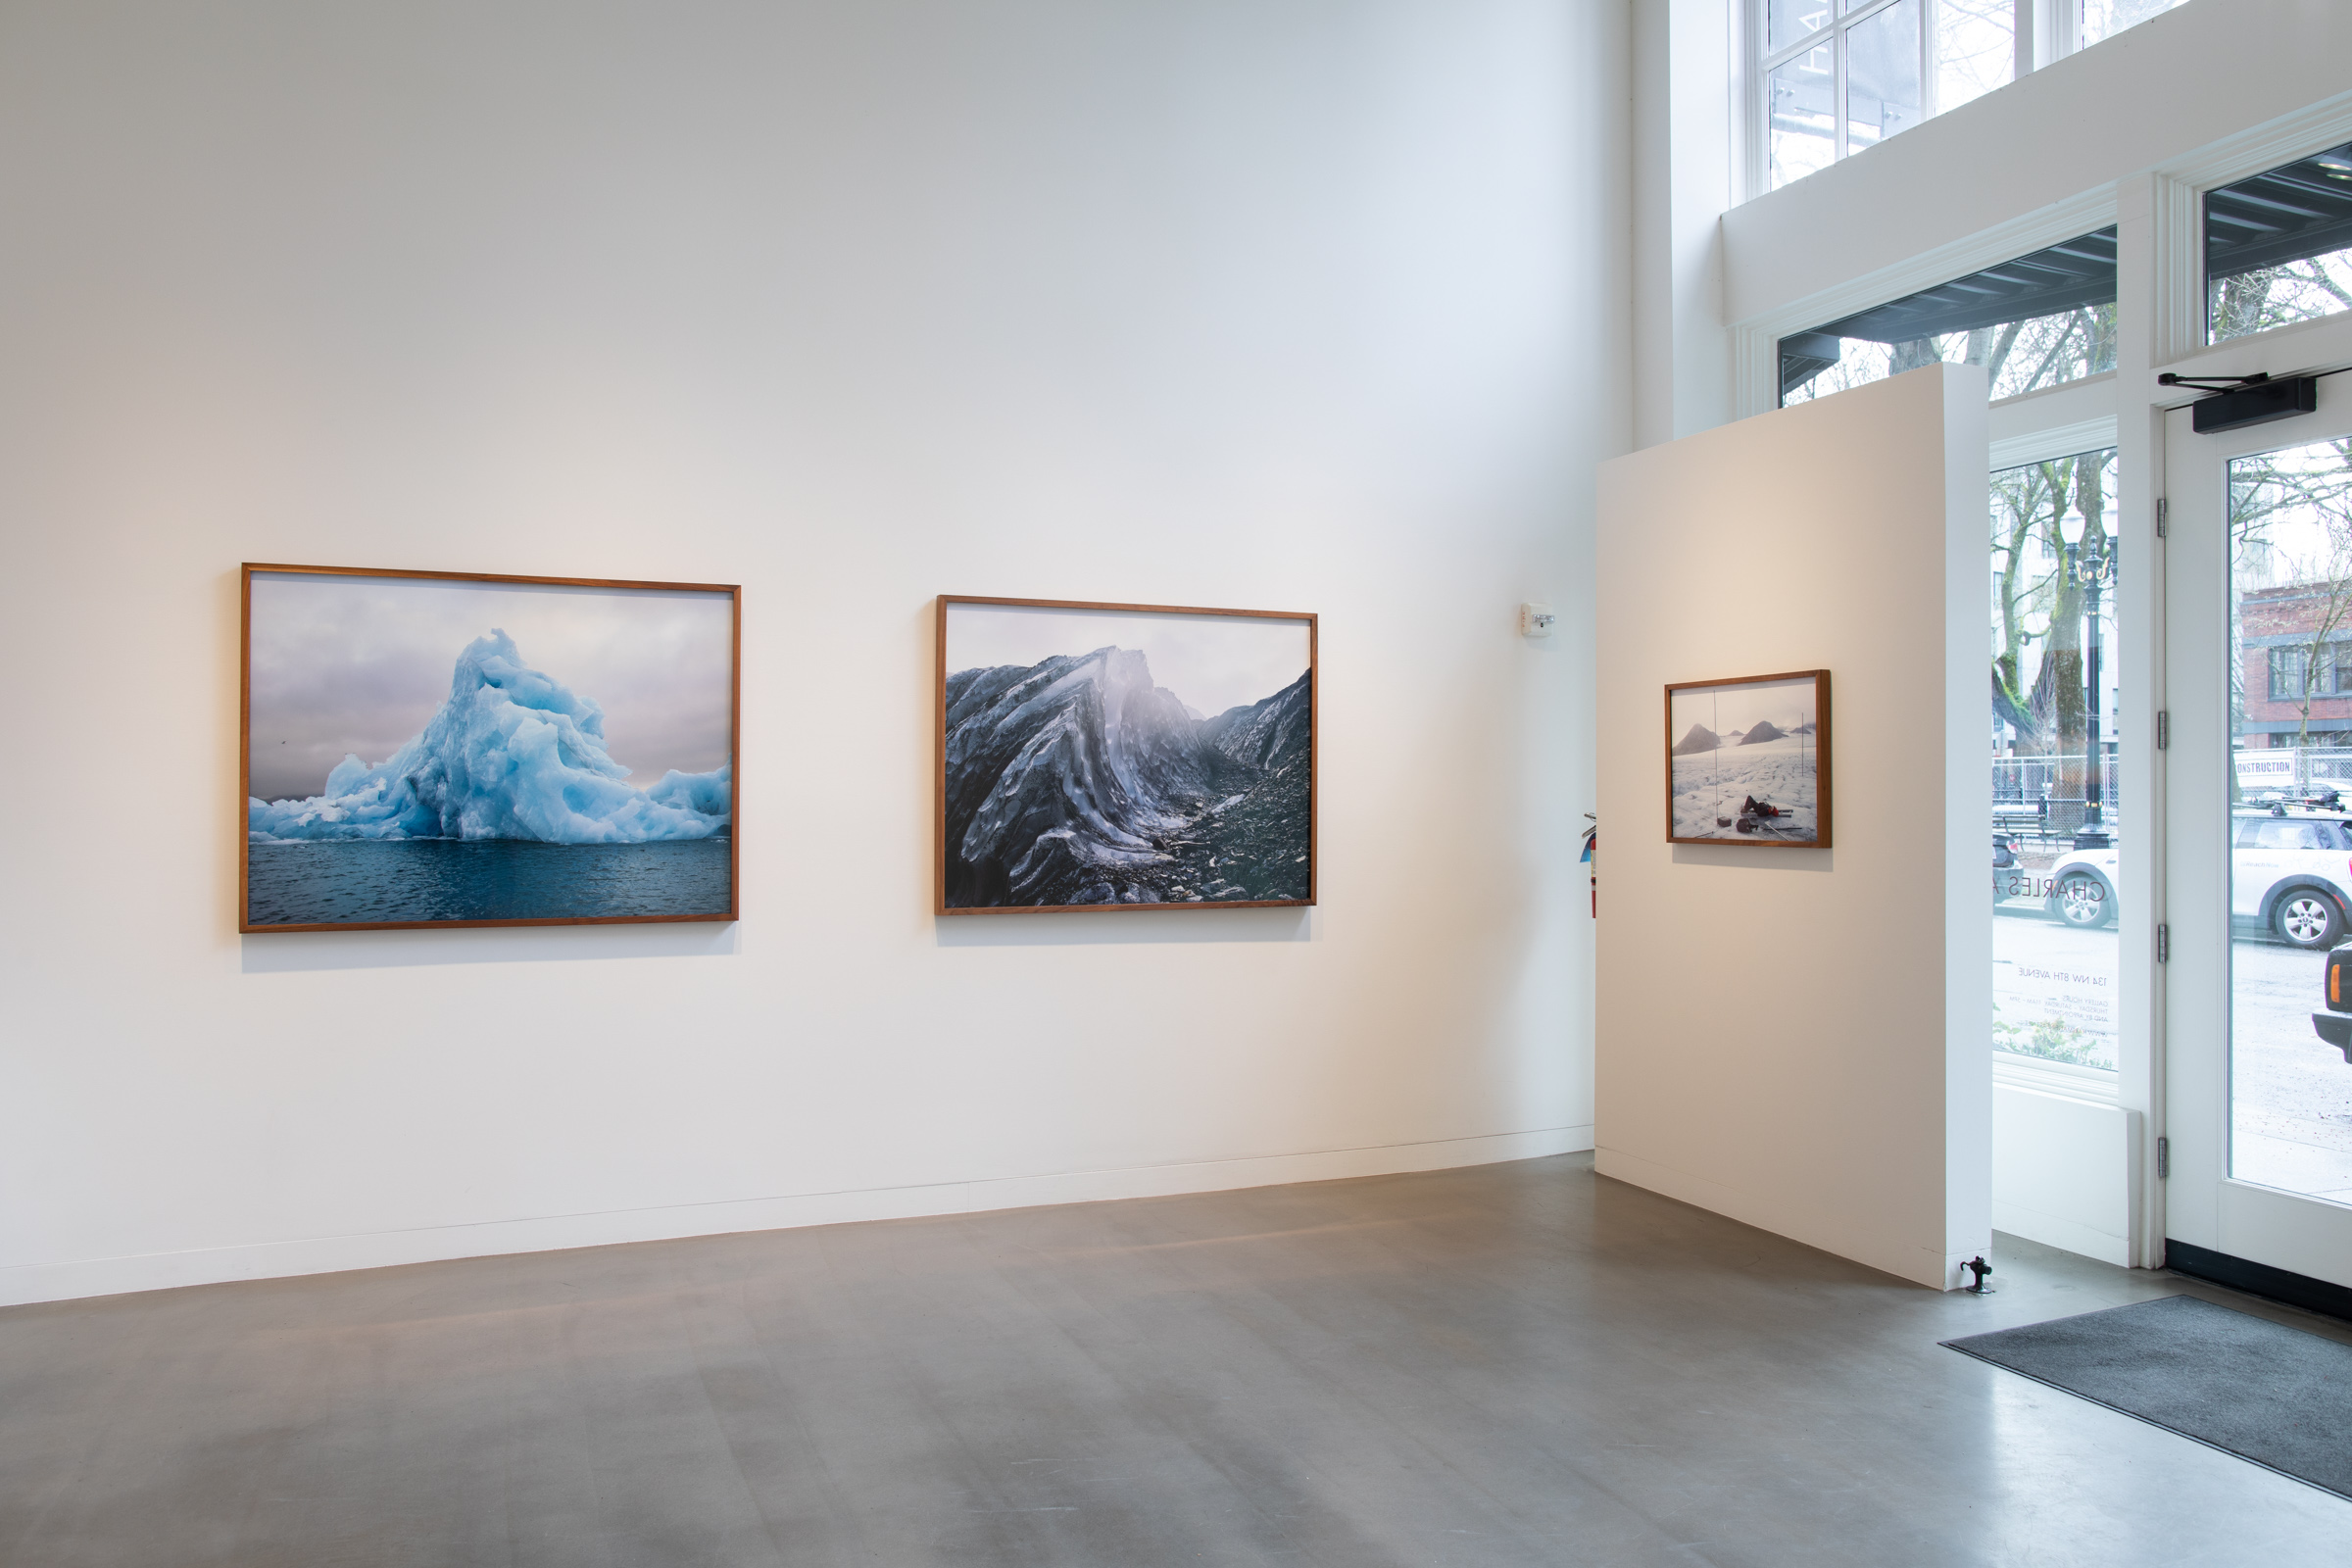 Corey Arnold, exhibition, hornsund, charles, hartman, fine art, photography, show, portland, project-pressure, project, pressure, climate, change, ice, glacier